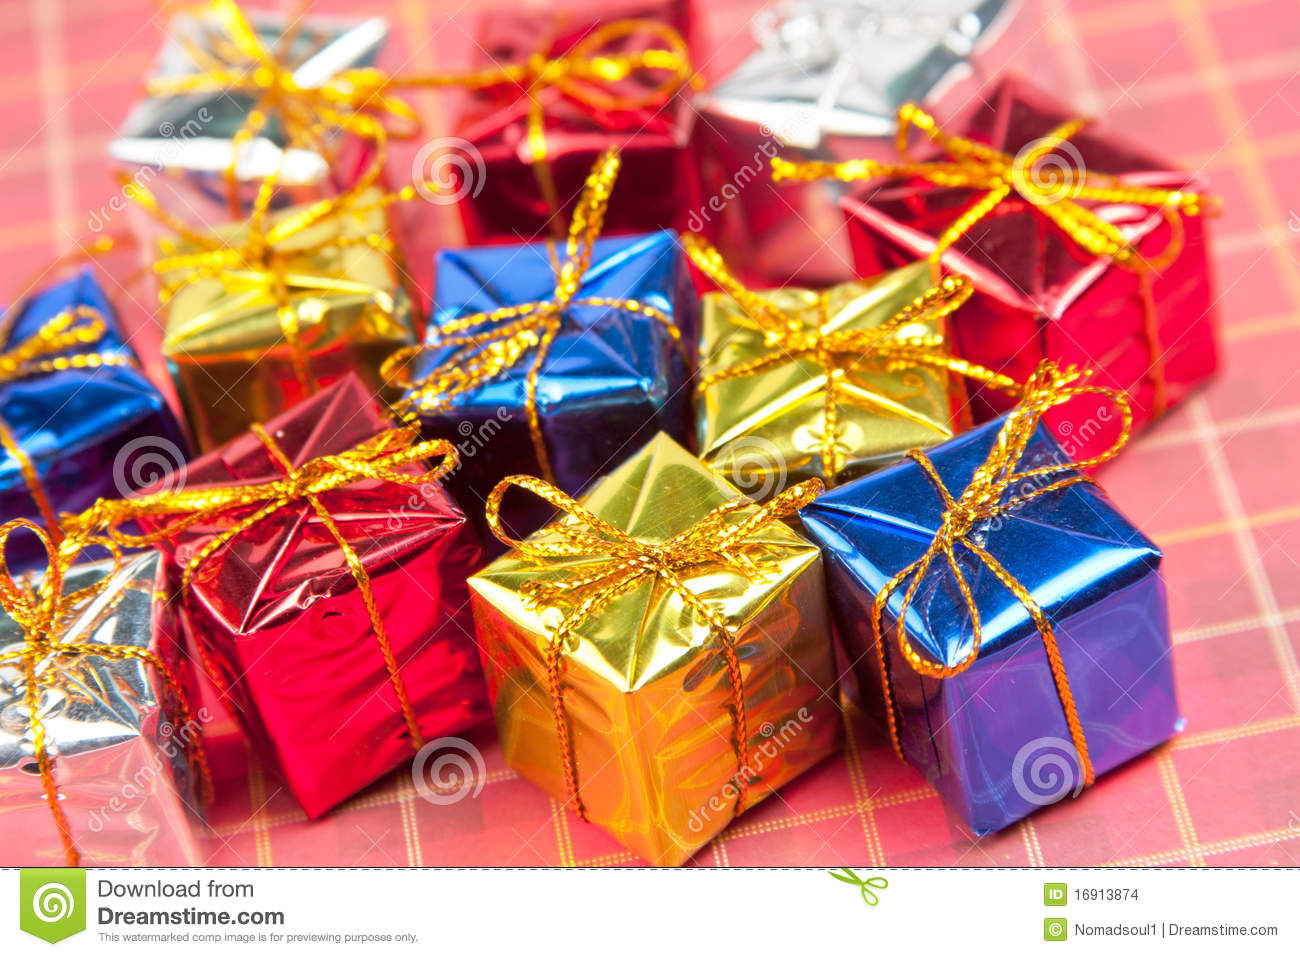 Many small christmas gifts stock photo. Image of rolled - 16913874